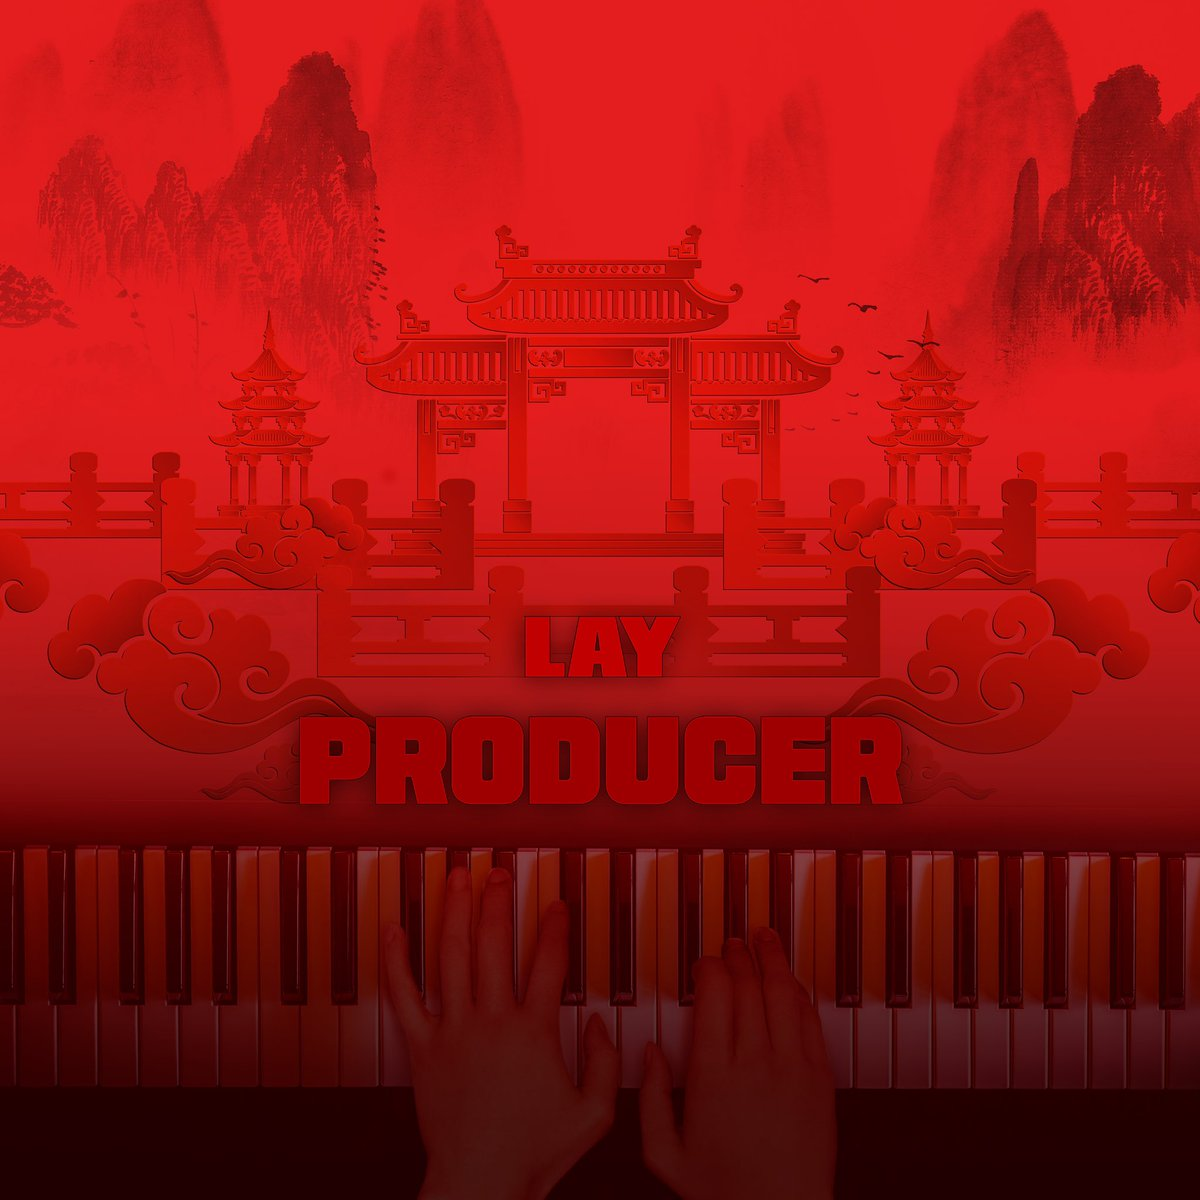 Hi everyone my album #PRODUCER is out now! I am happy that I can finally share the songs I made while on the TV show CZR2! I hope you enjoy this studio version^^  LINK TO STREAM ➡️  LAY.lnk.to/PRODUCER